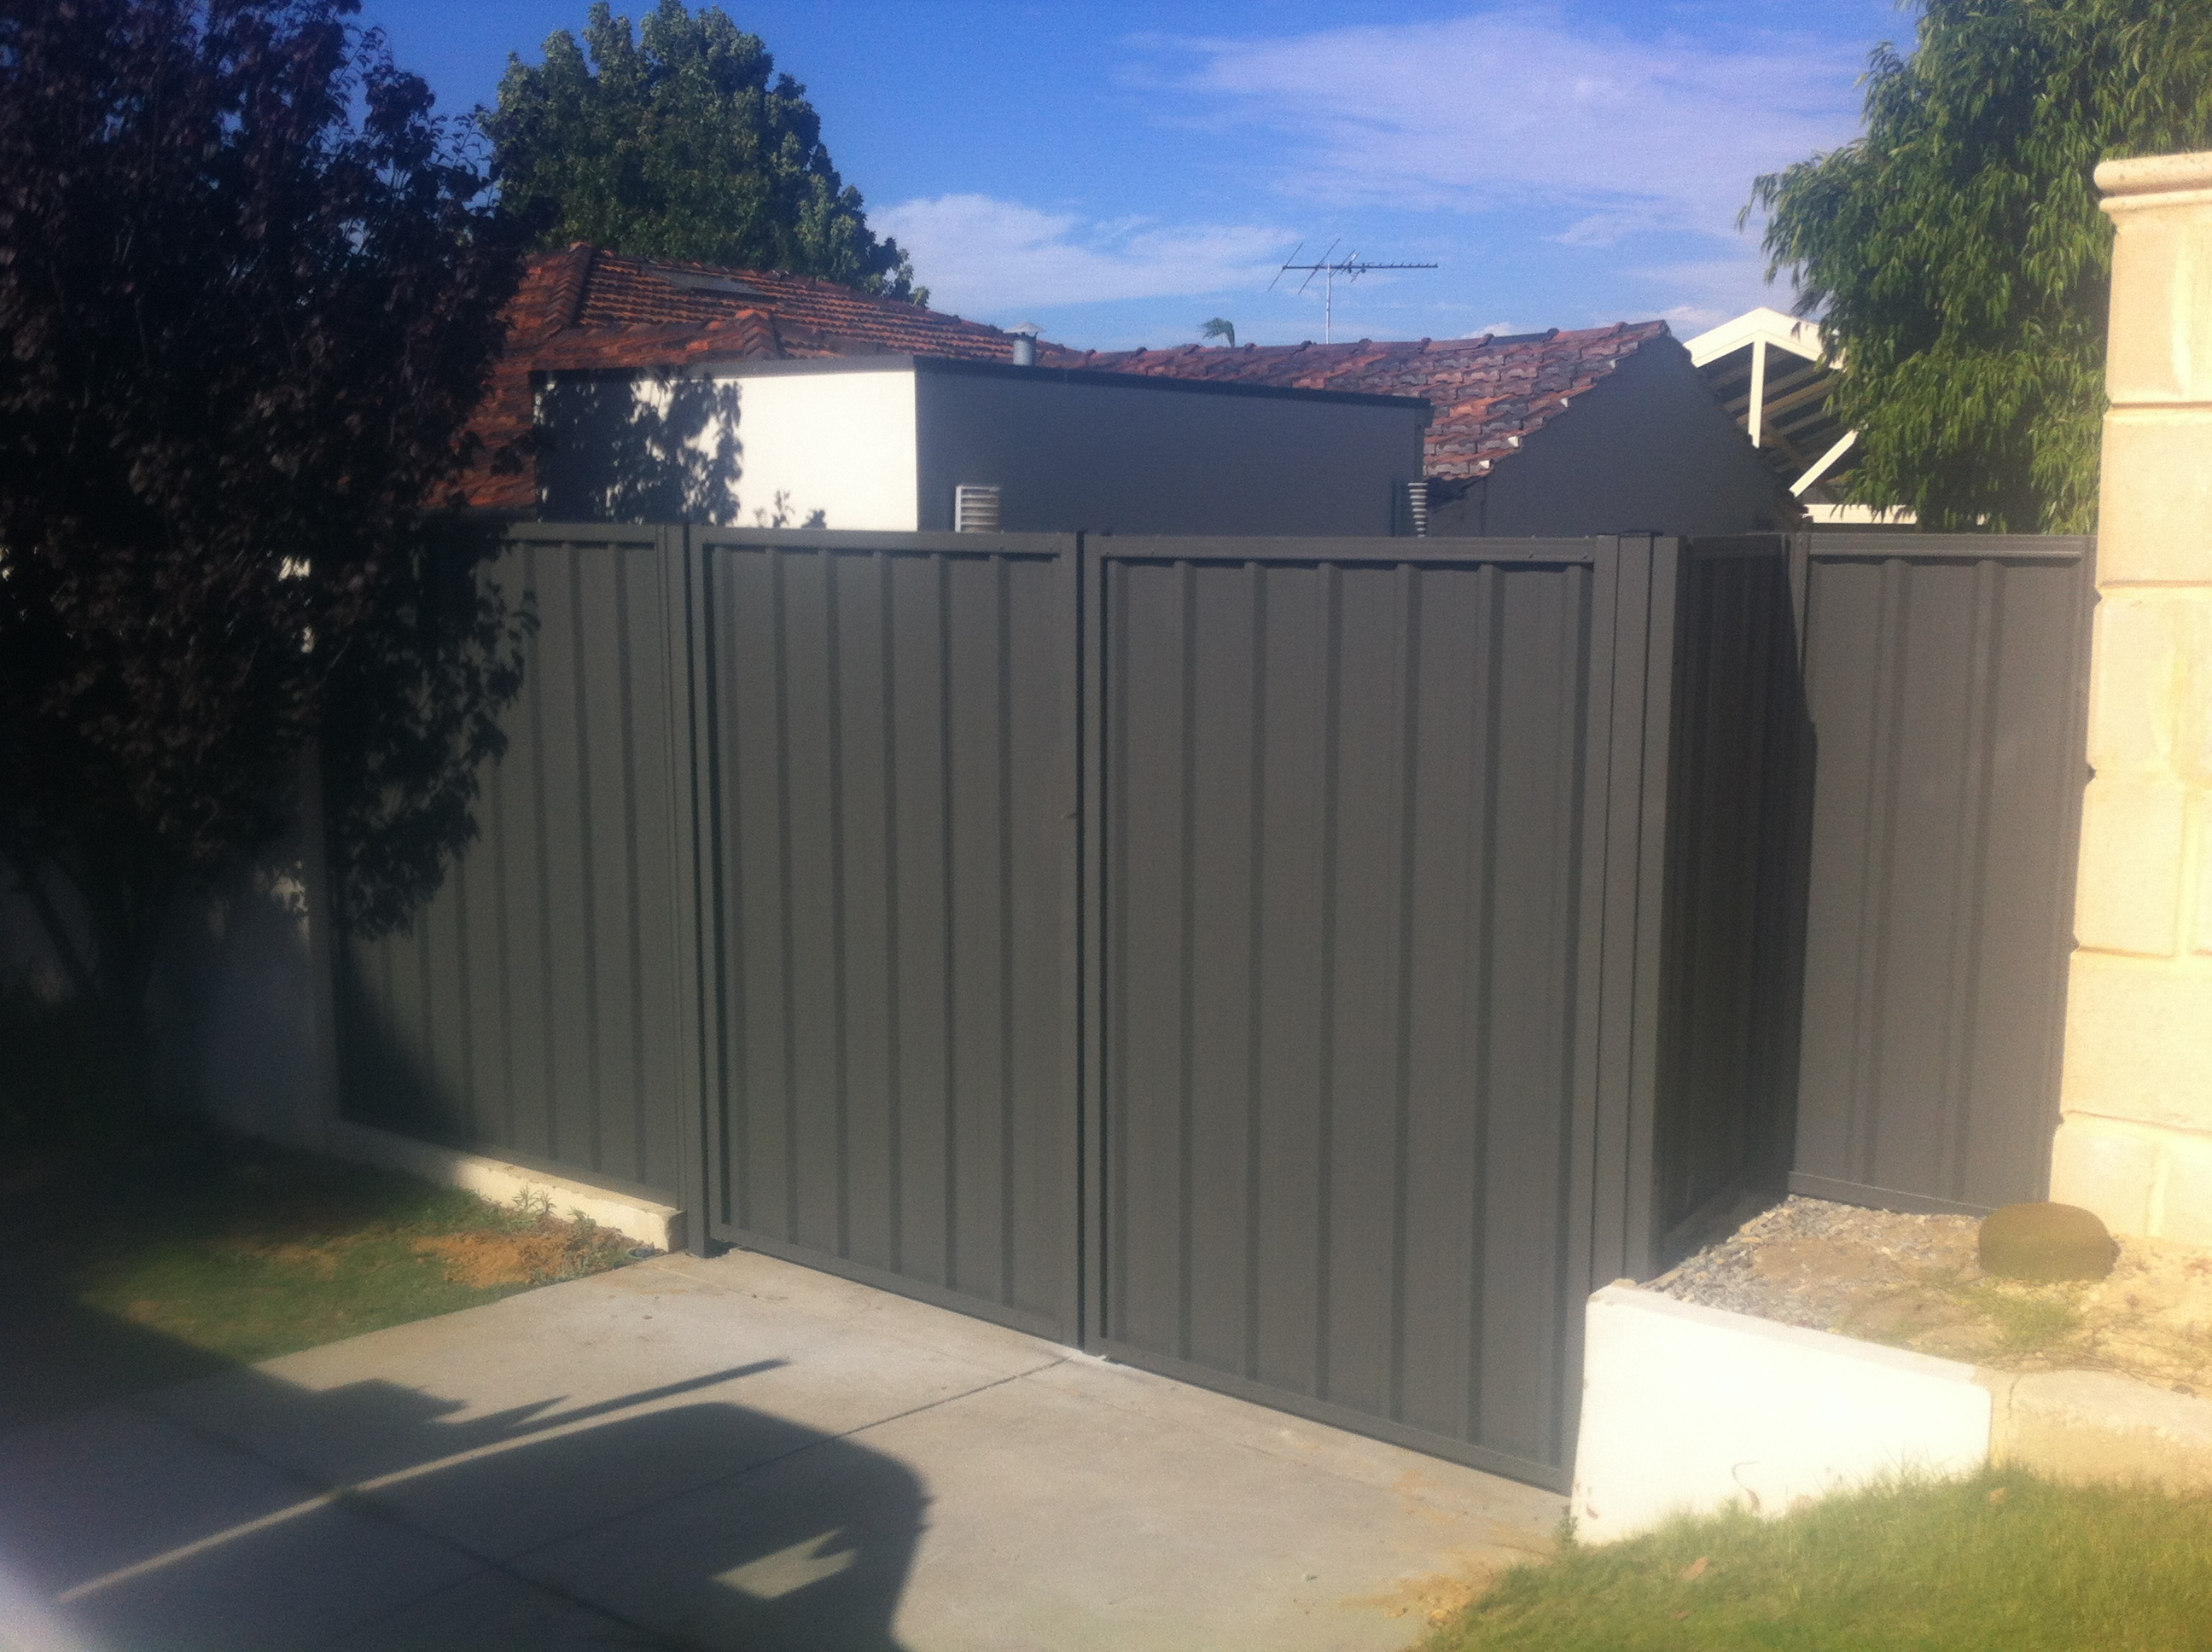 Colorbond Fencing with double gate